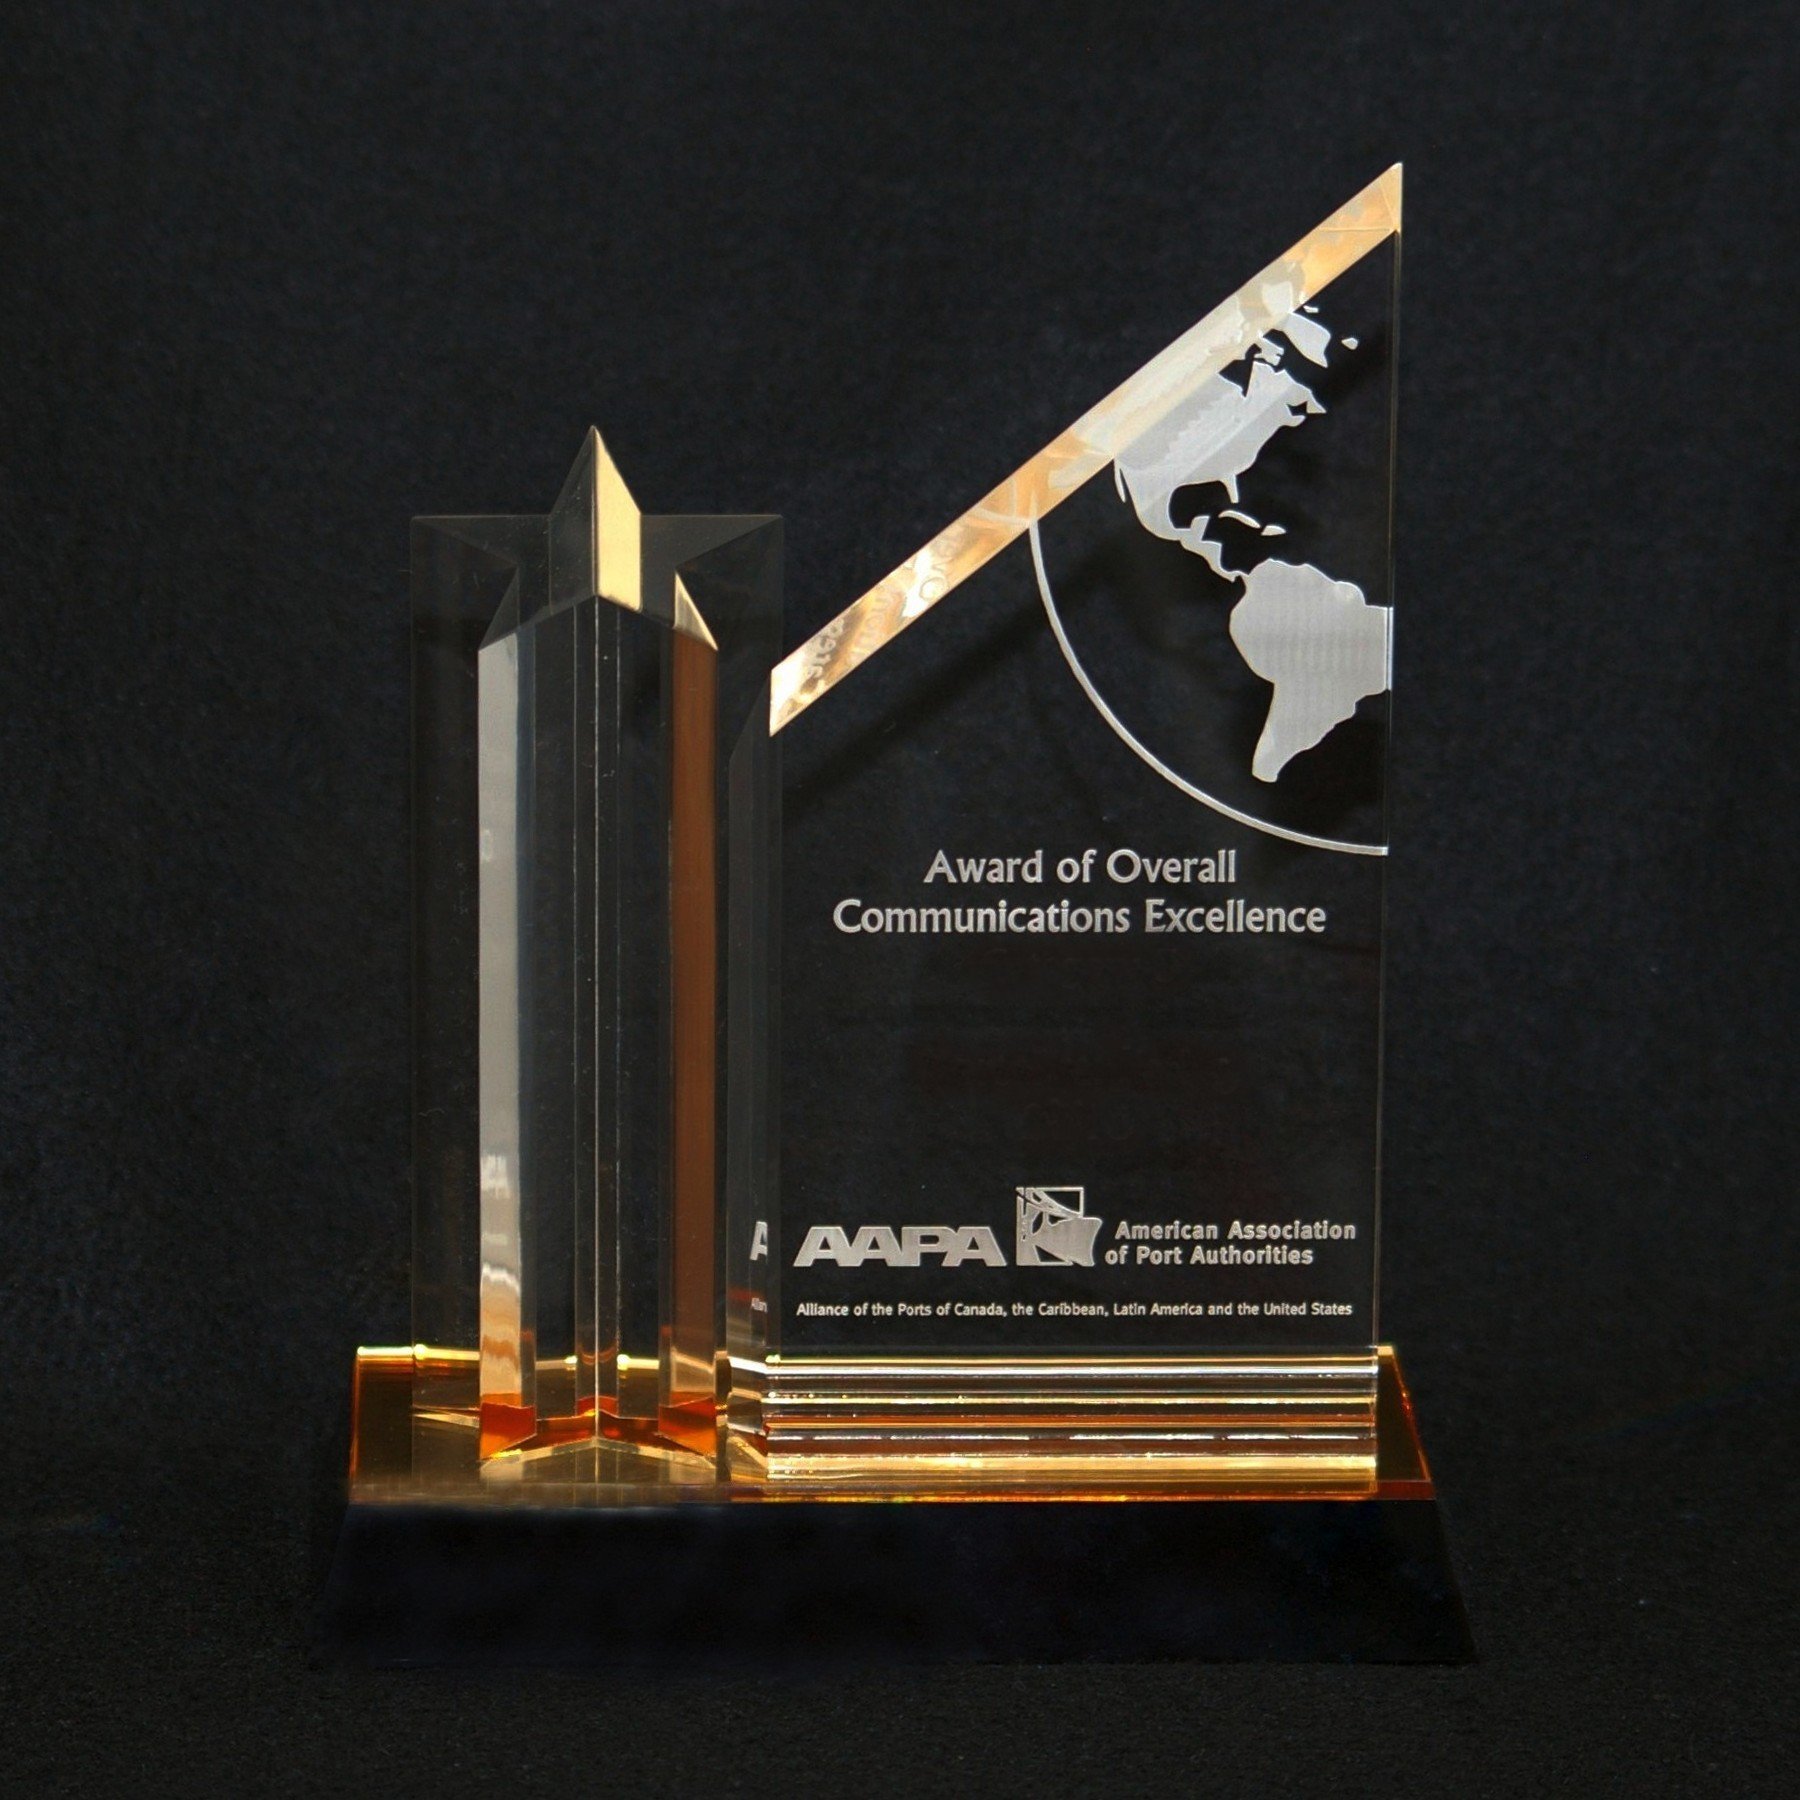 Overall Award Of Communications Excellence Trophy